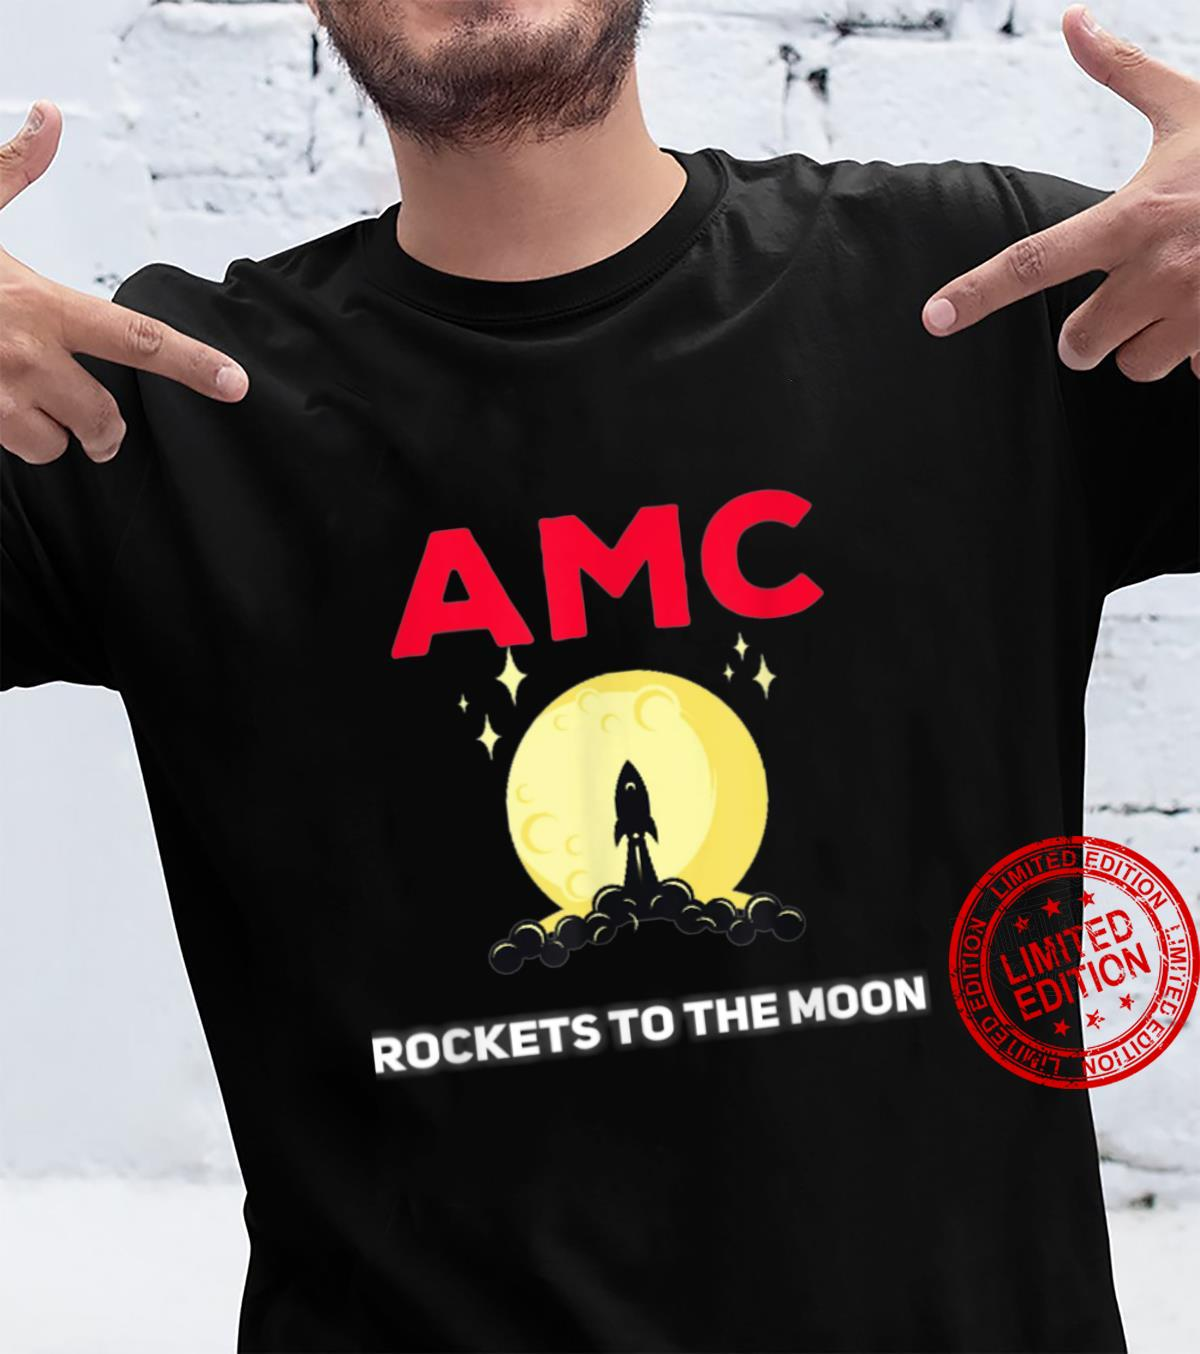 AMC rockets to the Moon wallstreetbetss Shirt